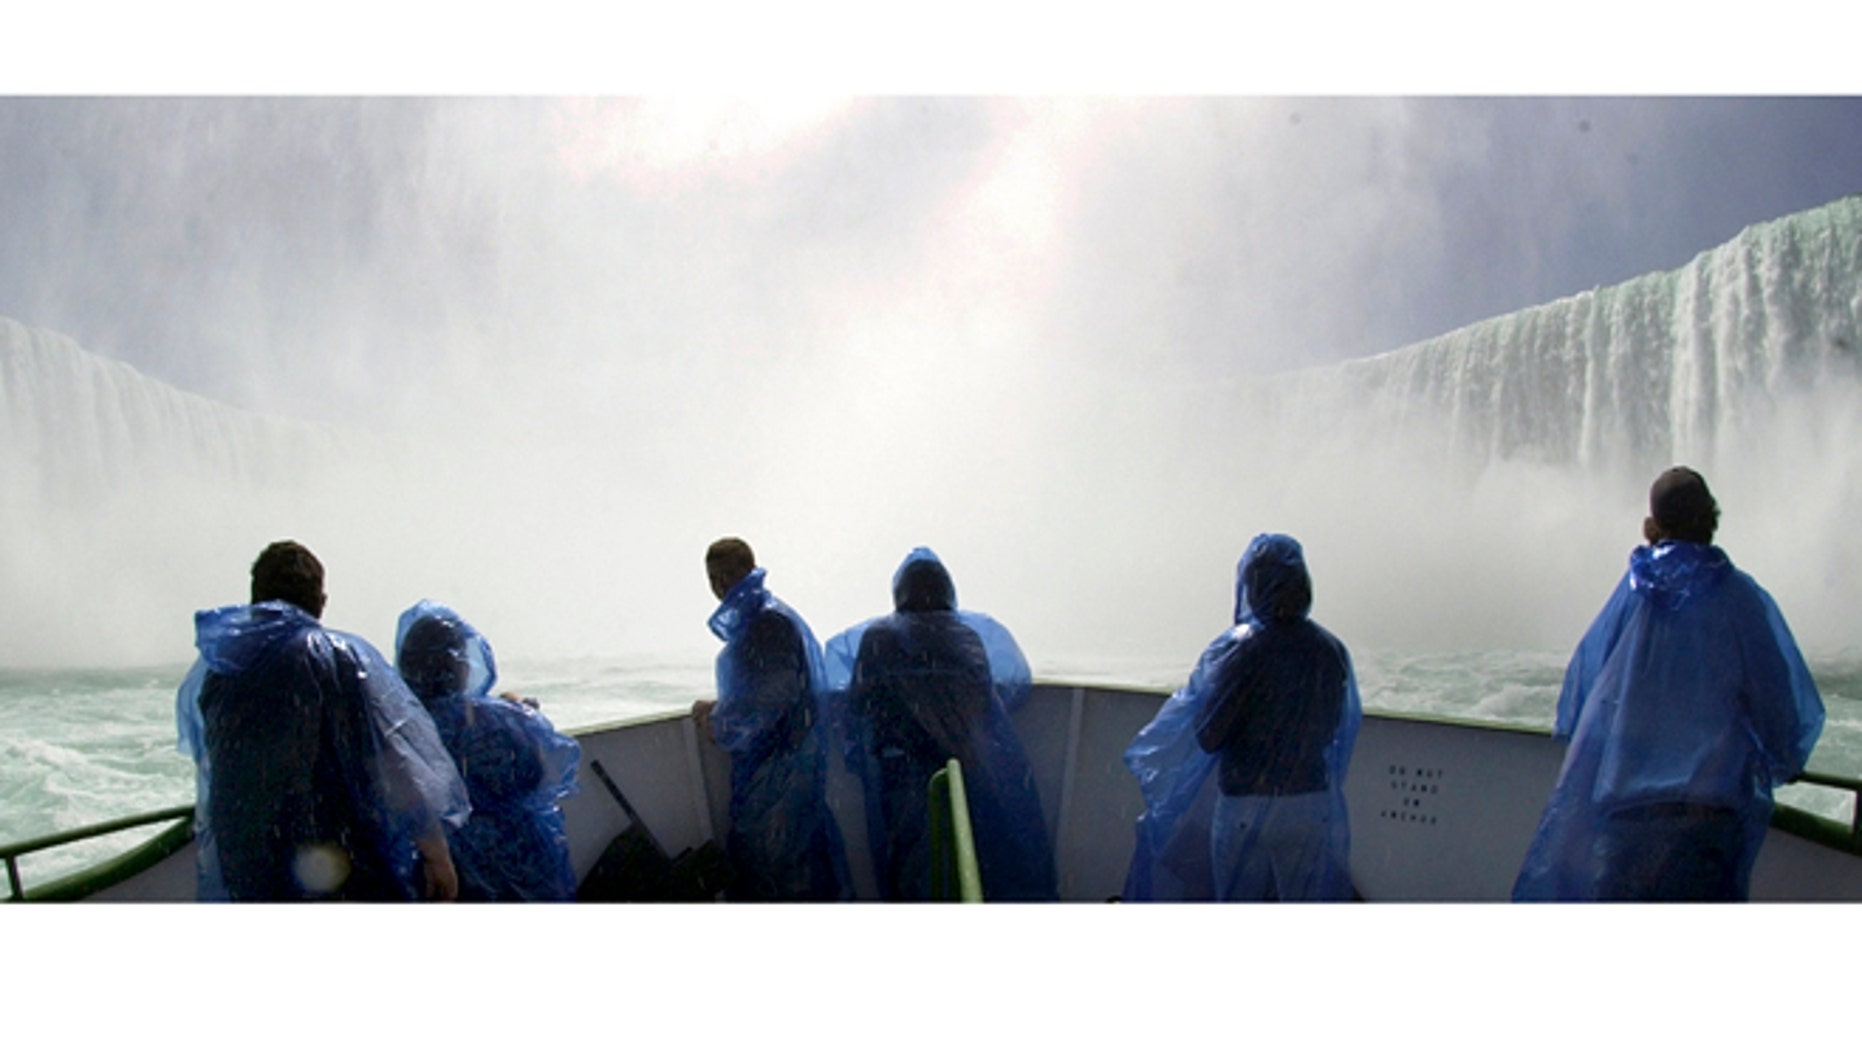 April 21, 2005: A group of tourists brave opening day on the bow of the Maid of the Mist at the base of the Horseshoe Falls.